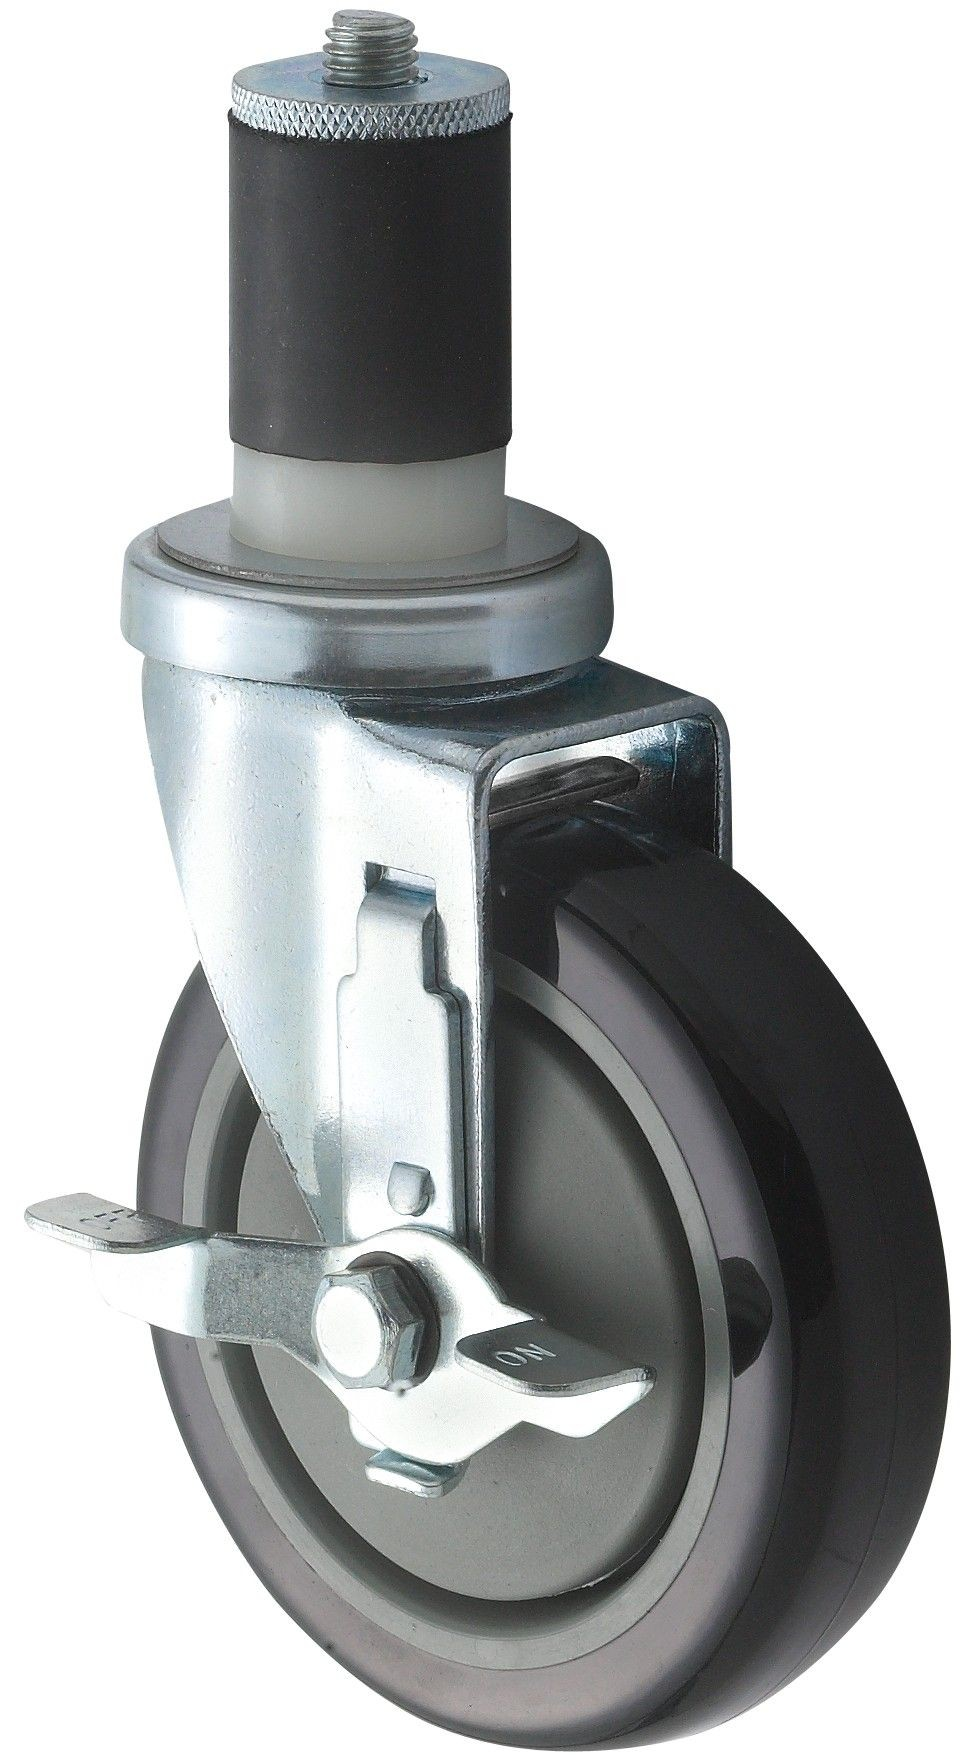 Casters With Brake, Fits Standard 1 5/8